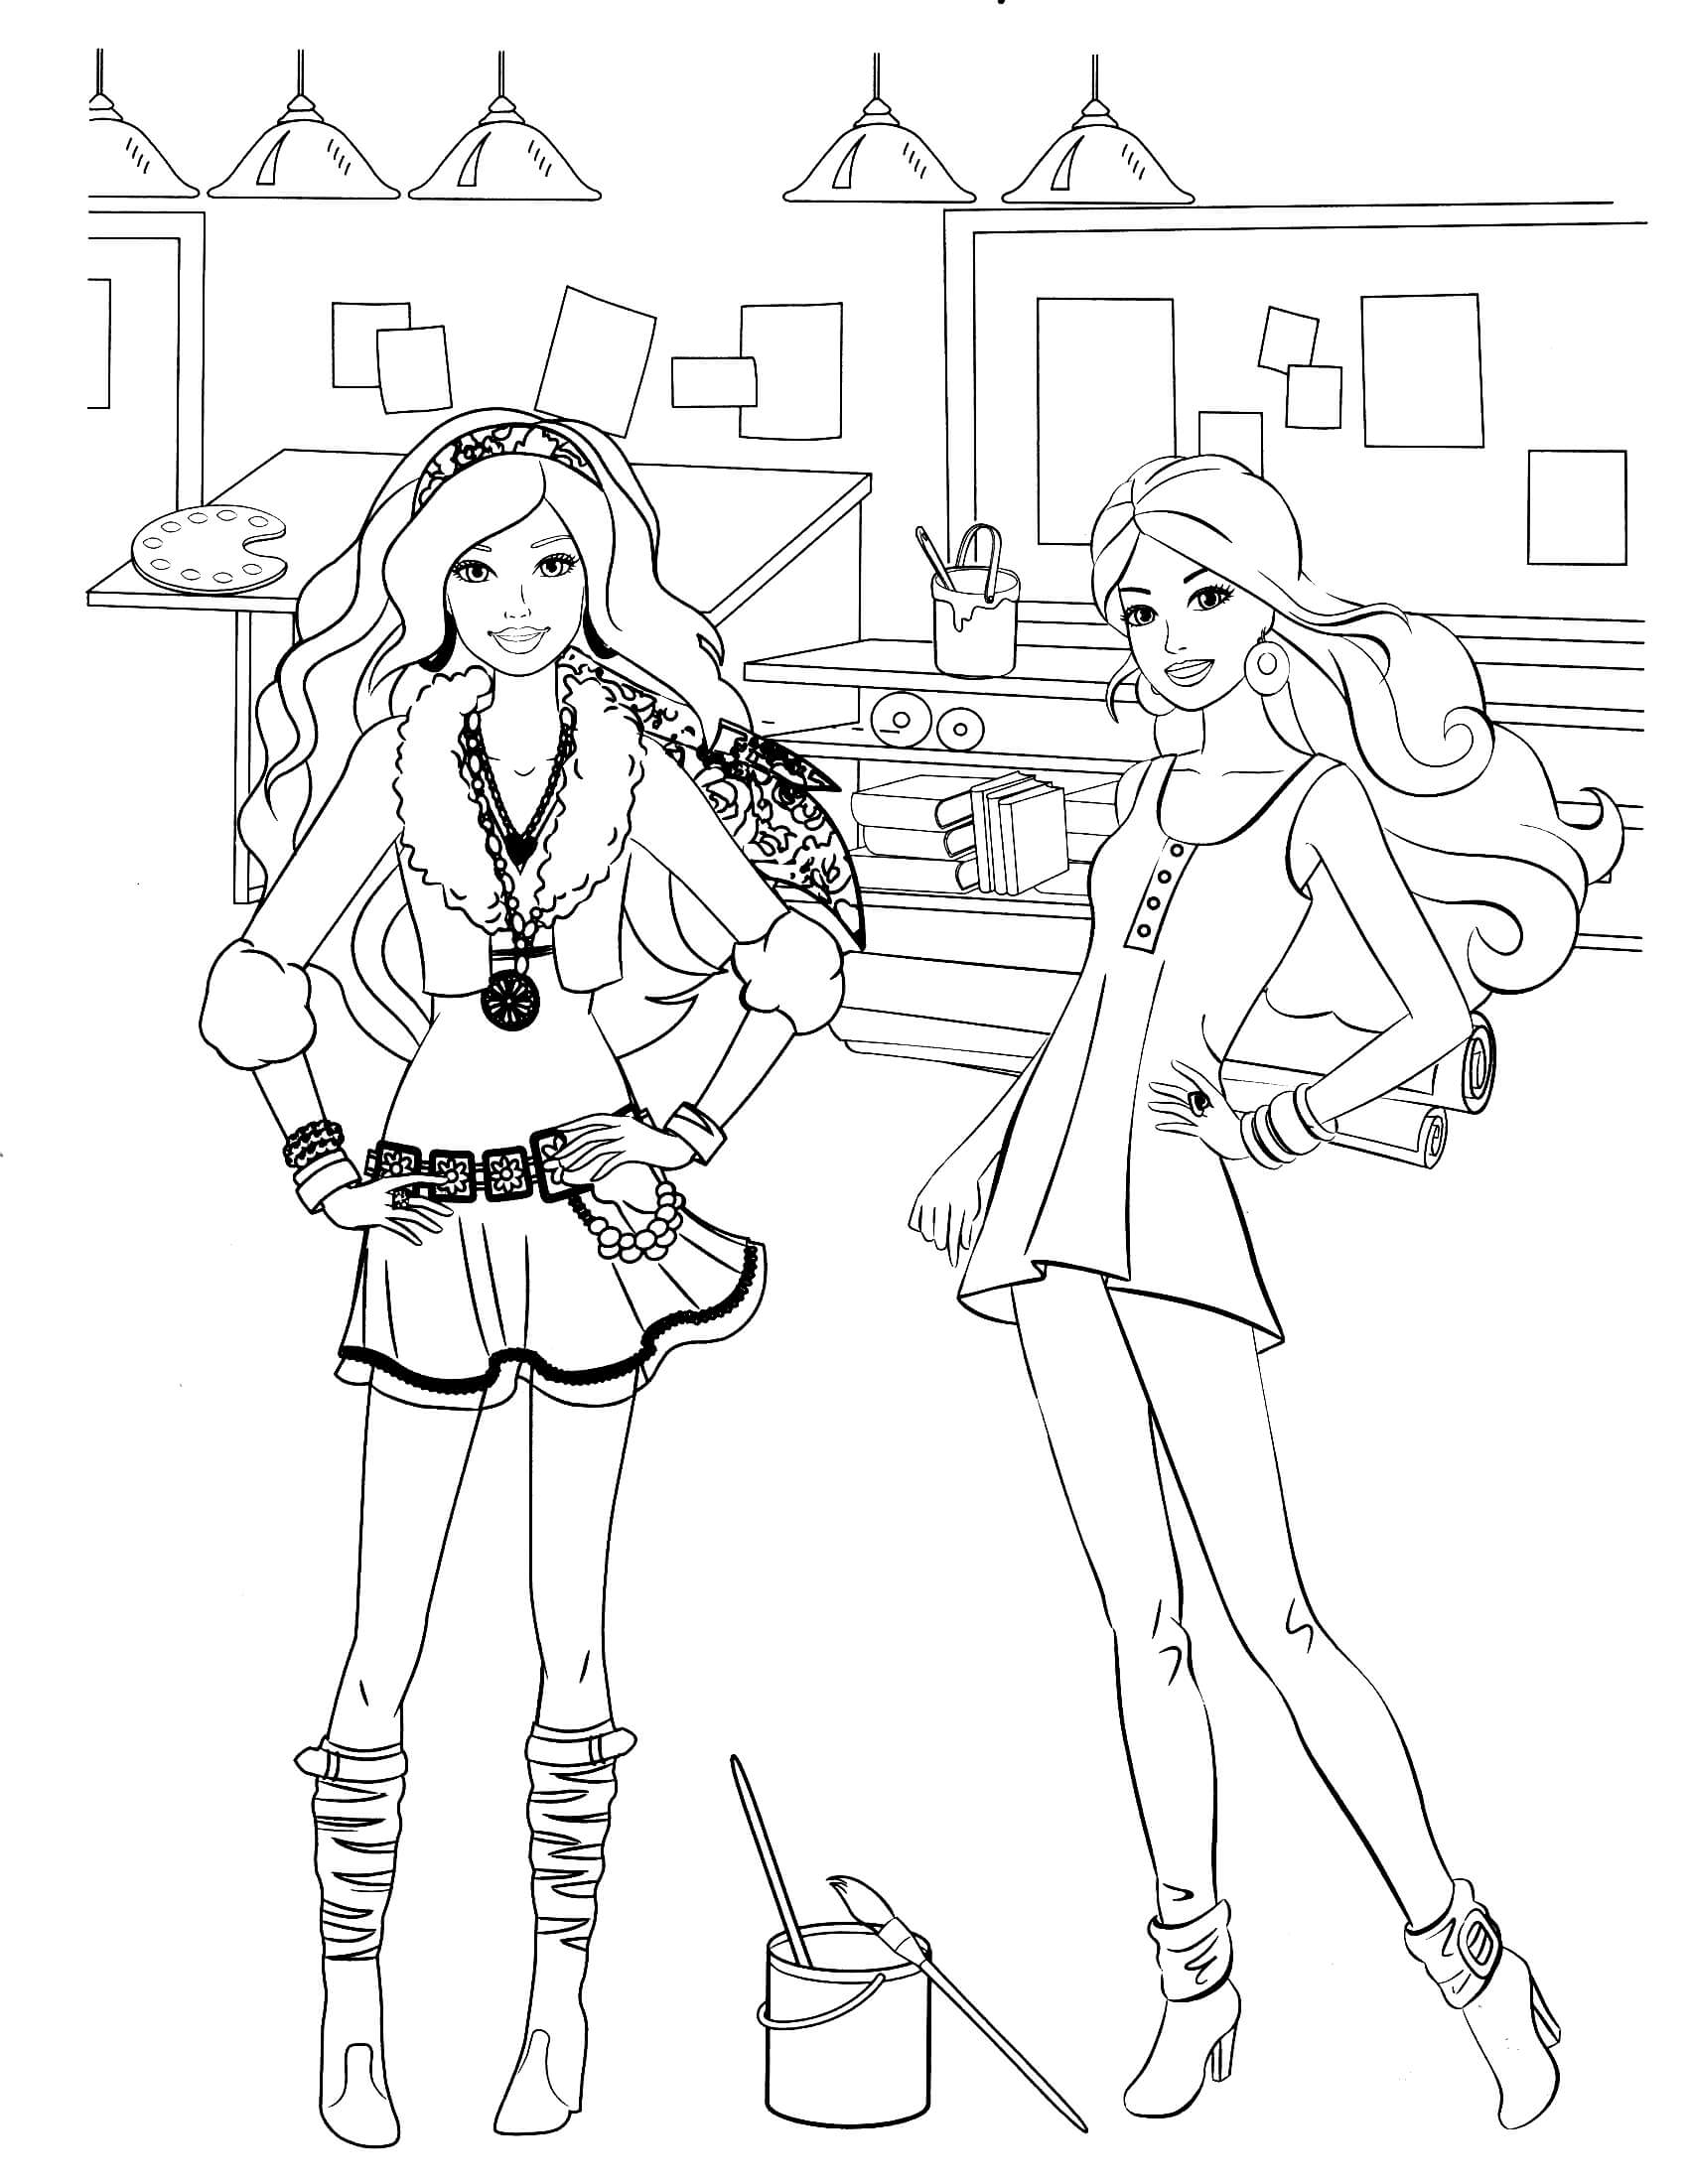 barbie car coloring pages barbie coloring pages christmas coloring pages for barbie car coloring pages